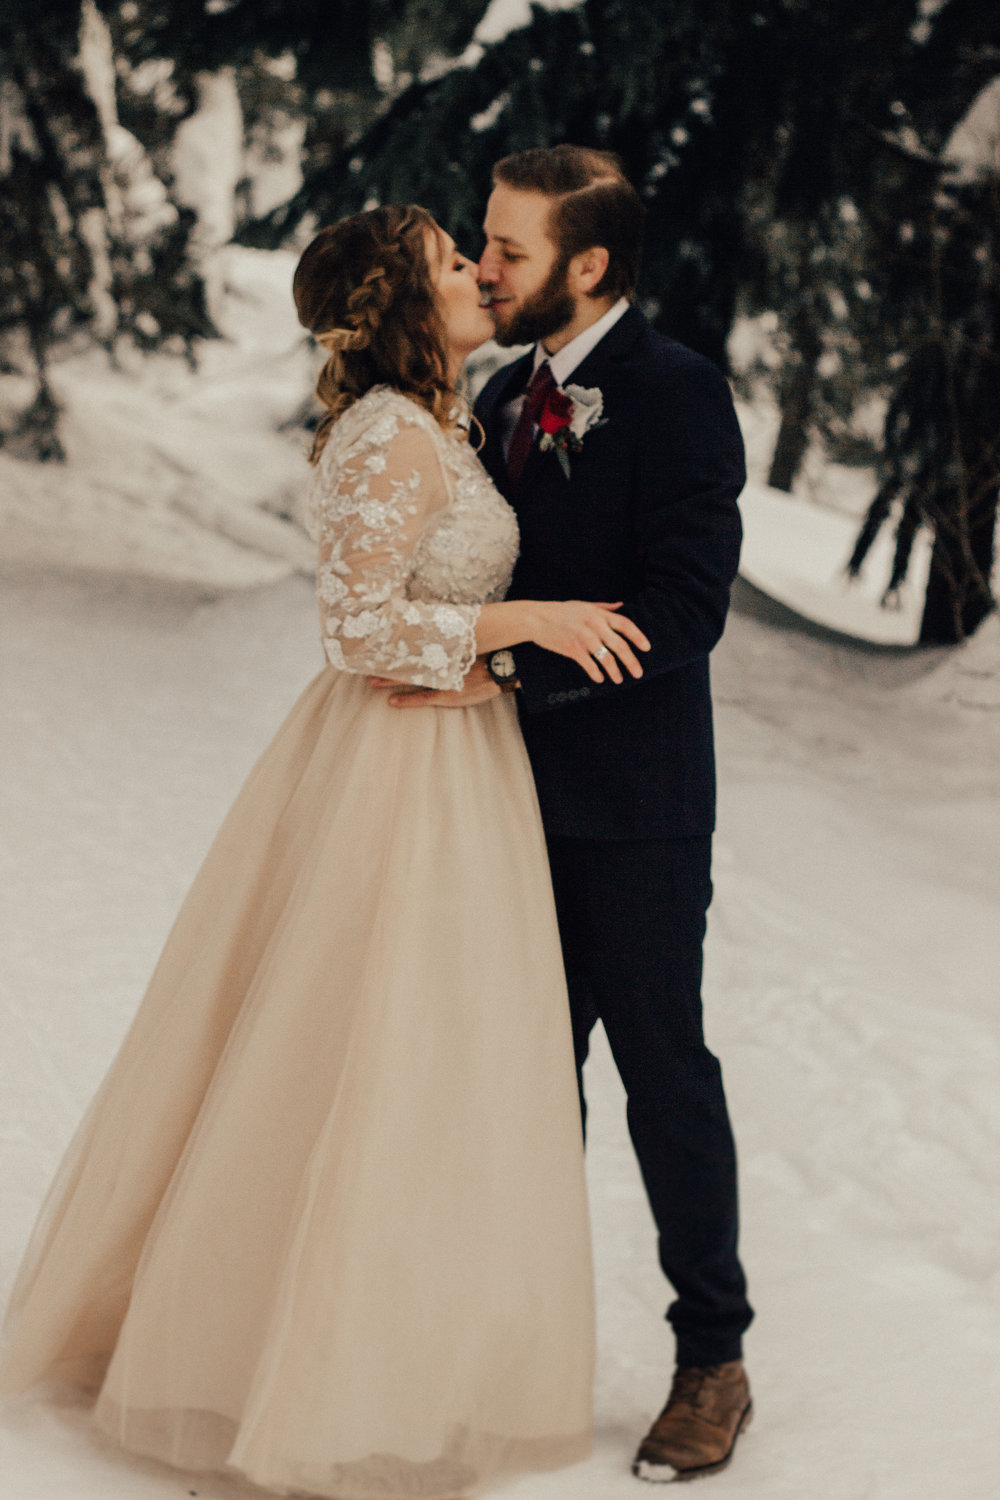 Styled-Winter-Elopement-187.jpg